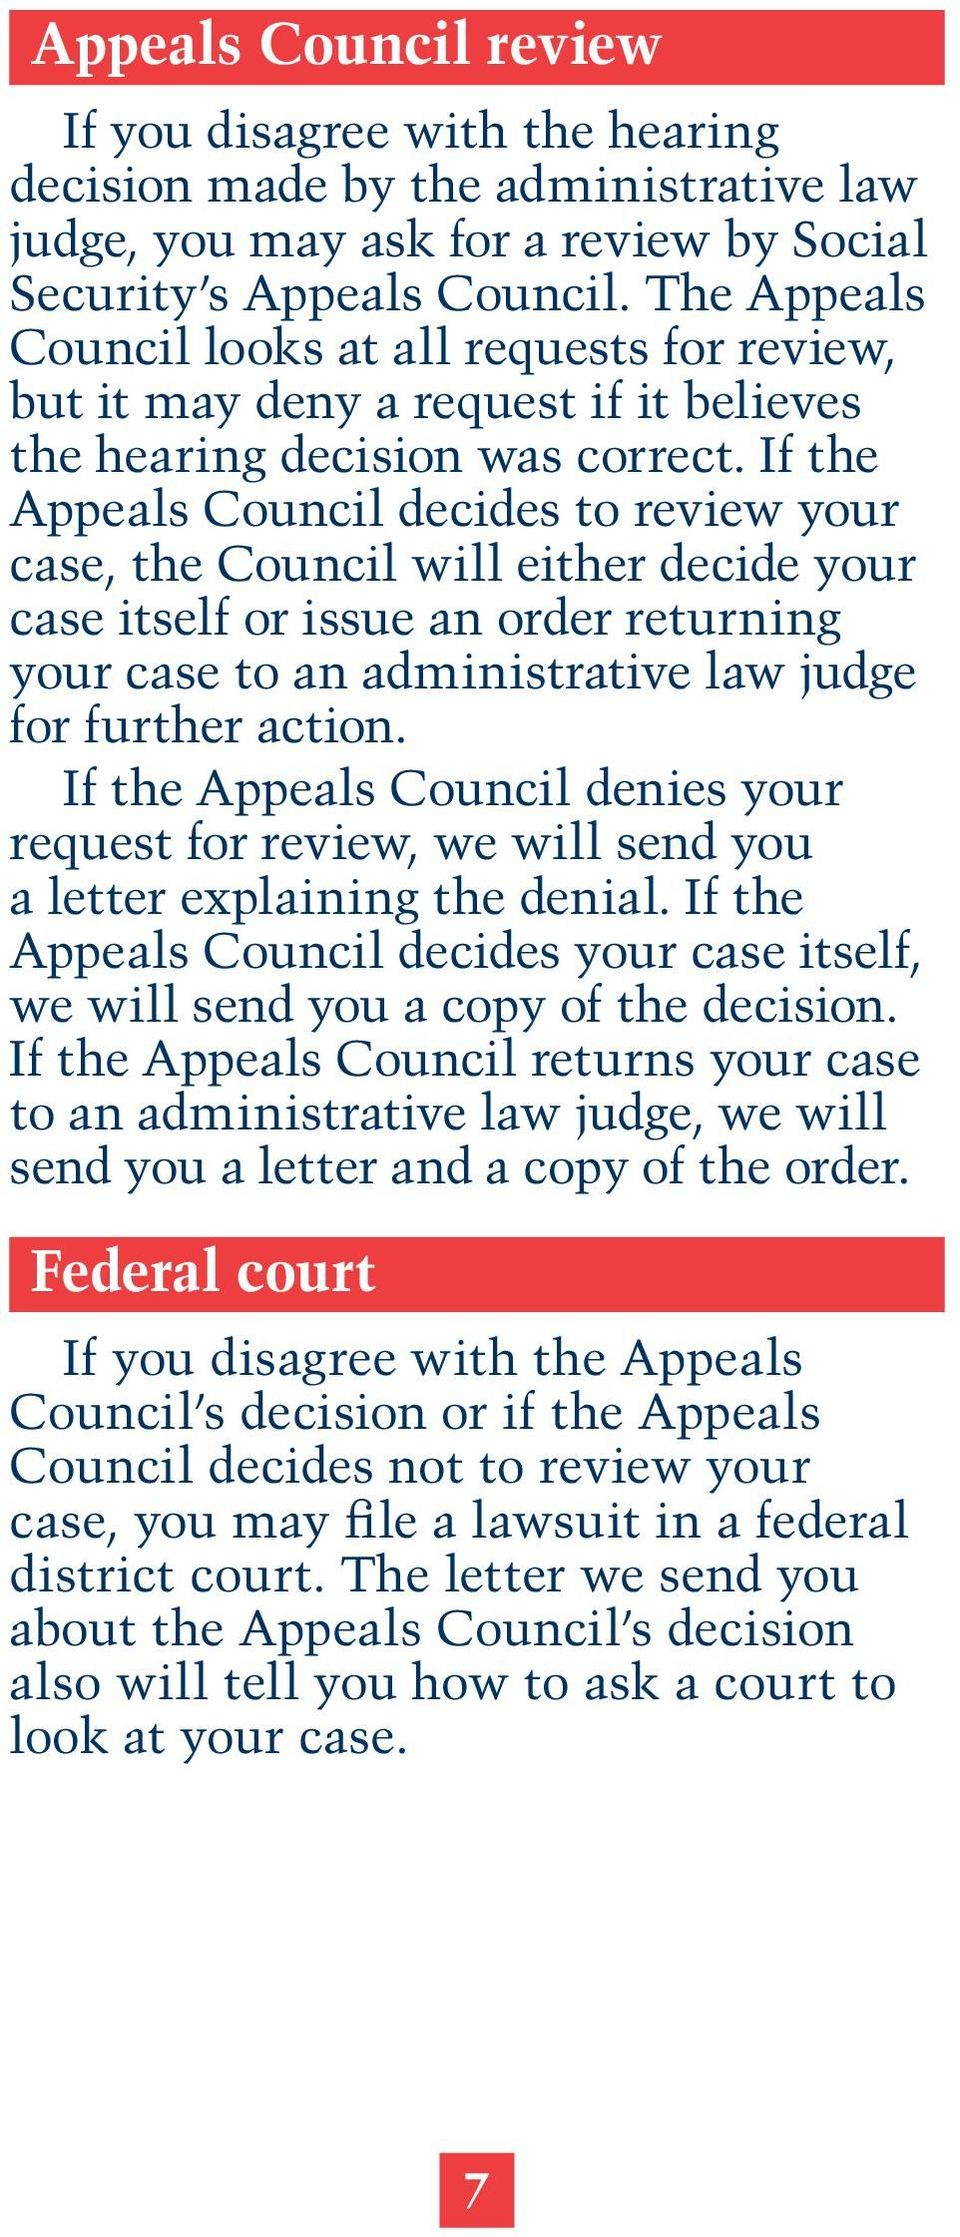 If the Appeals Council decides to review your case, the Council will either decide your case itself or issue an order returning your case to an administrative law judge for further action.